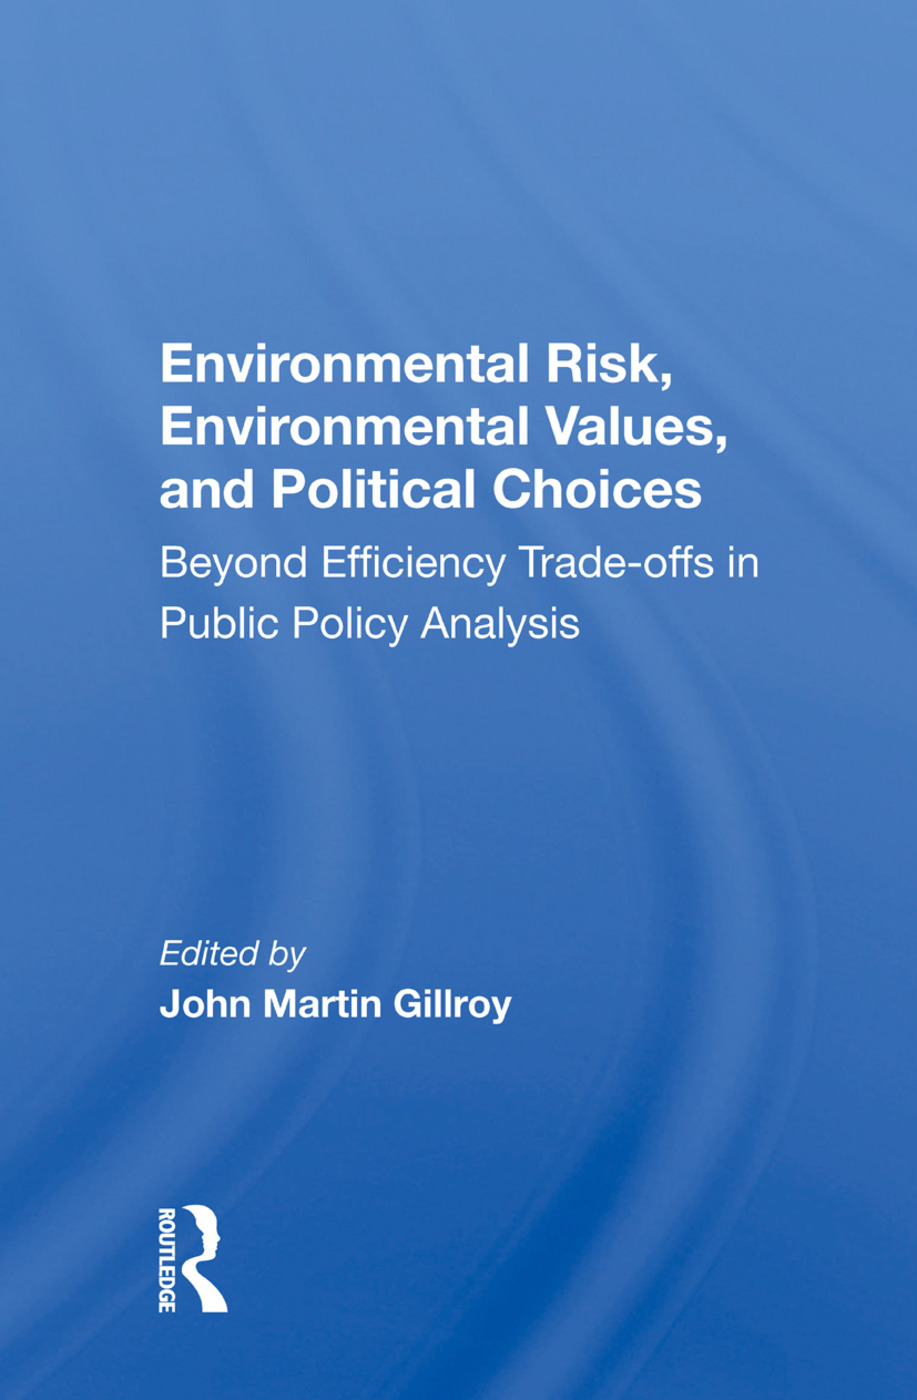 Environmental Risk, Environmental Values, And Political Choices: Beyond Efficiency Tradeoffs In Public Policy Analysis book cover